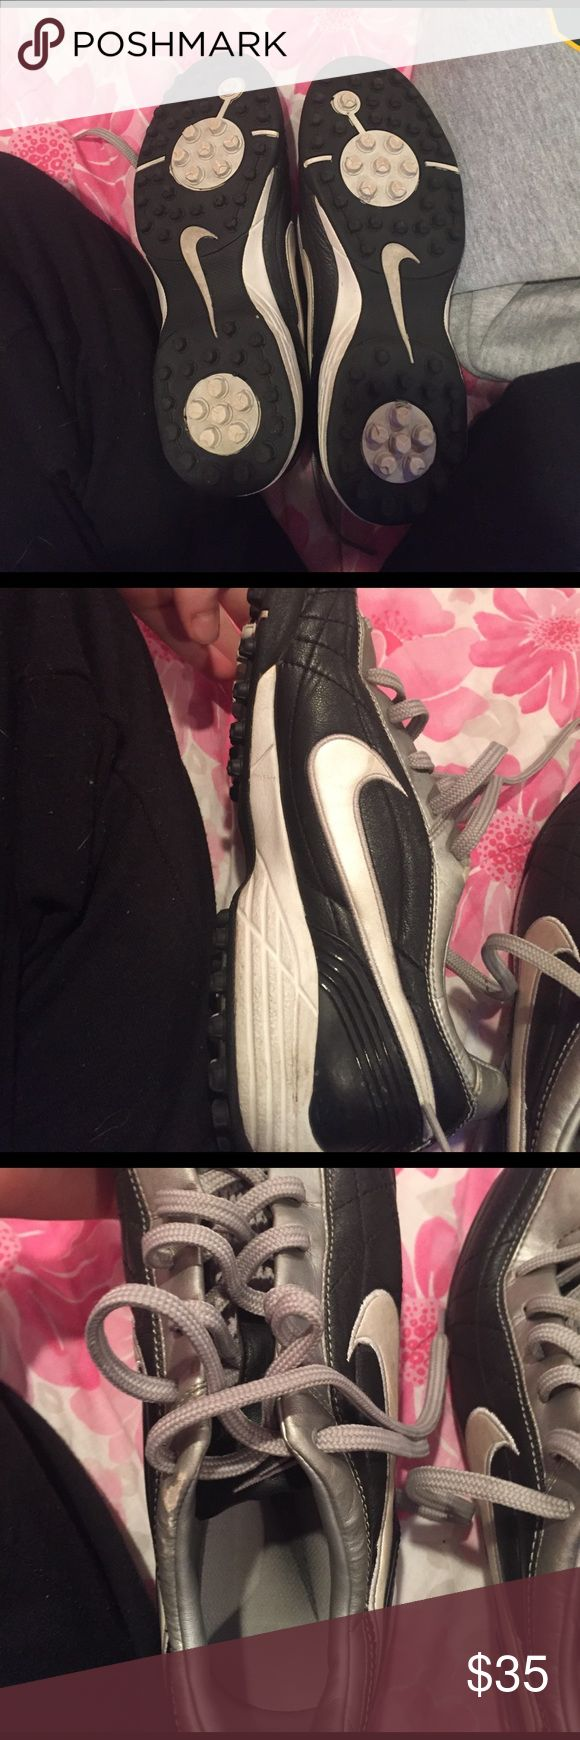 Nike turf shoes These gray and black shoes go with any team colors! These shoes have been used but are still on good condition! Nike Turf shoes! Nike Shoes Athletic Shoes